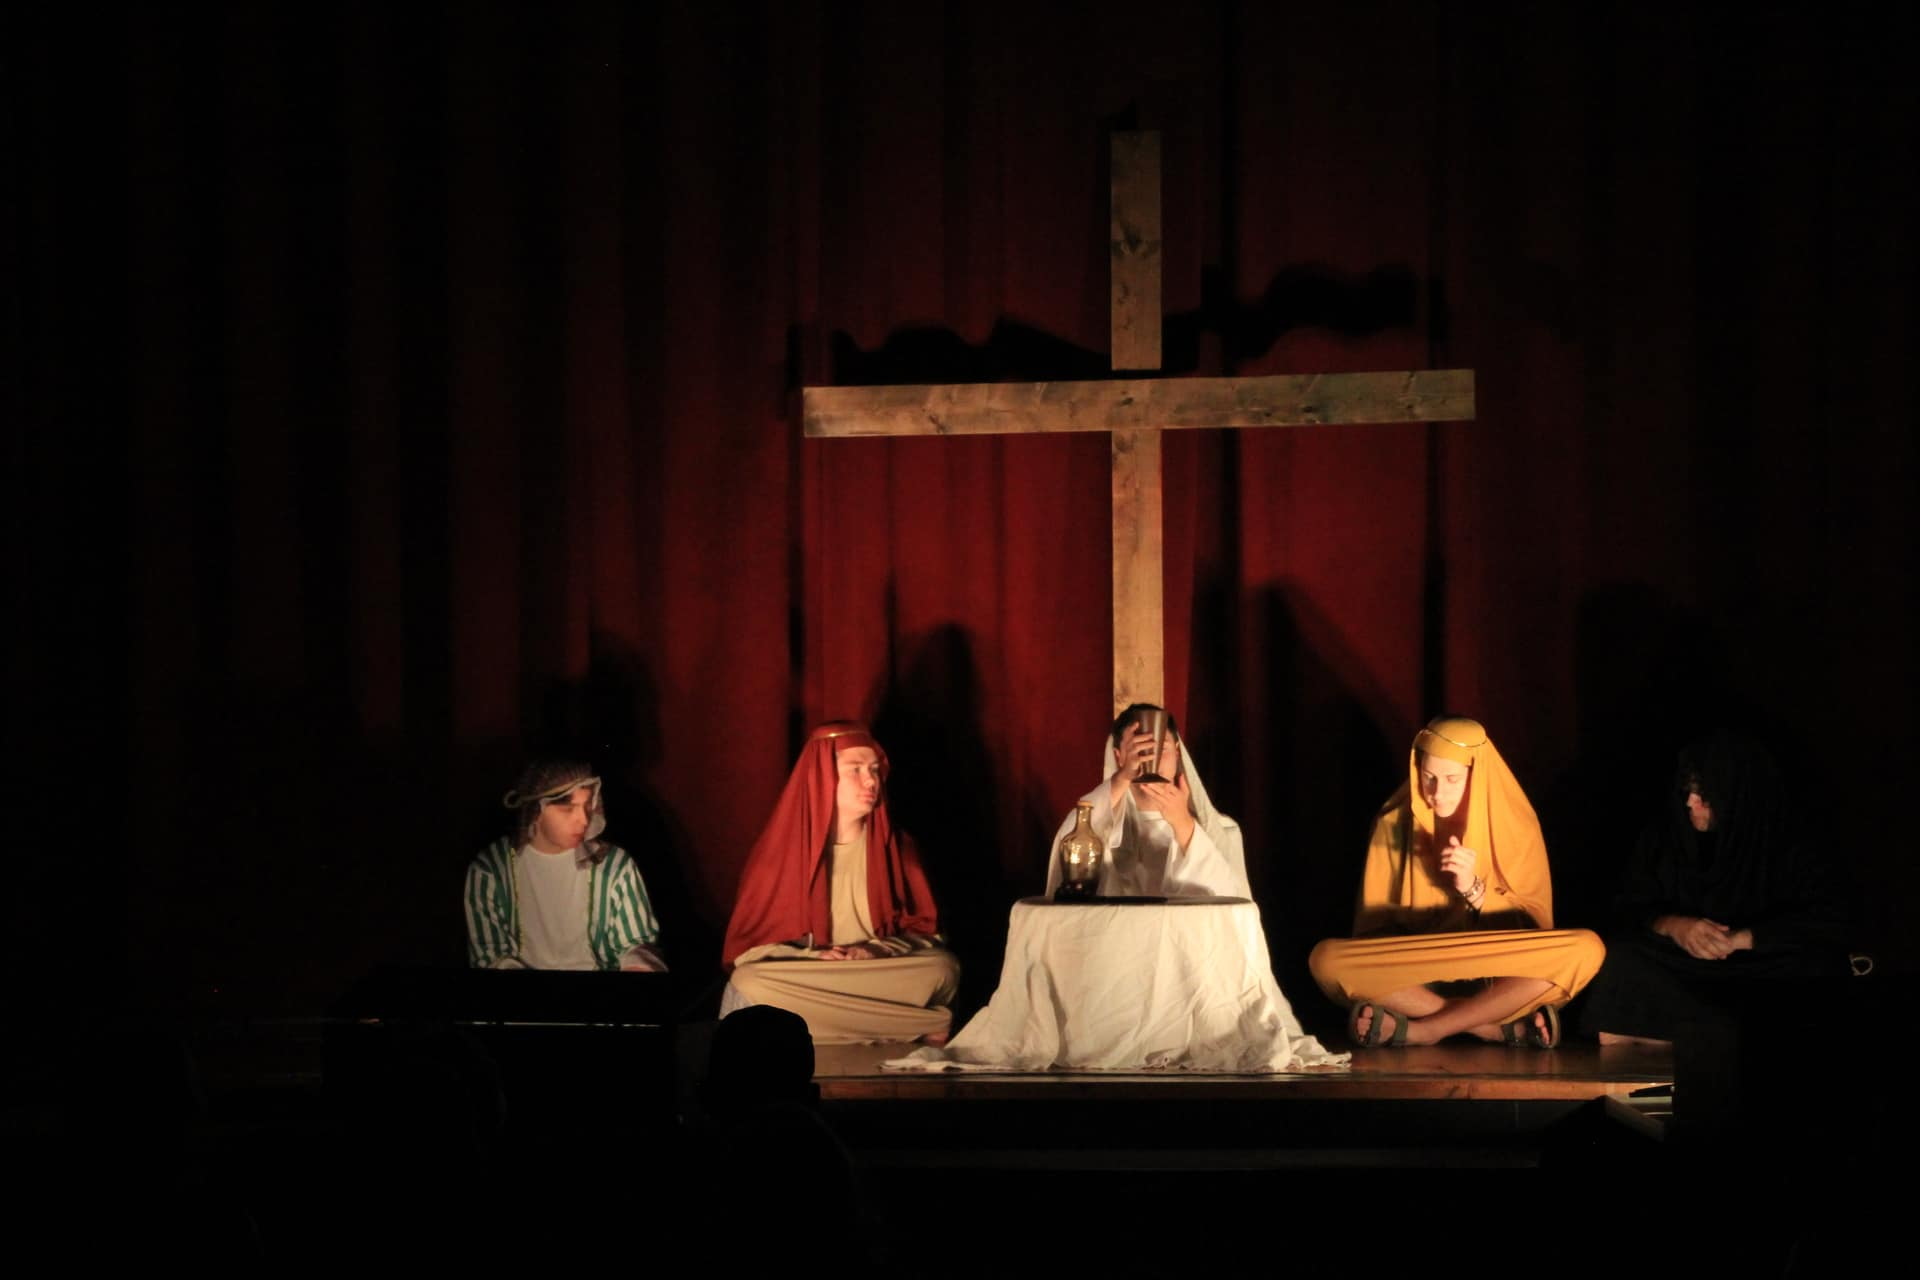 Come see the live action Passion Play presented by our youth group